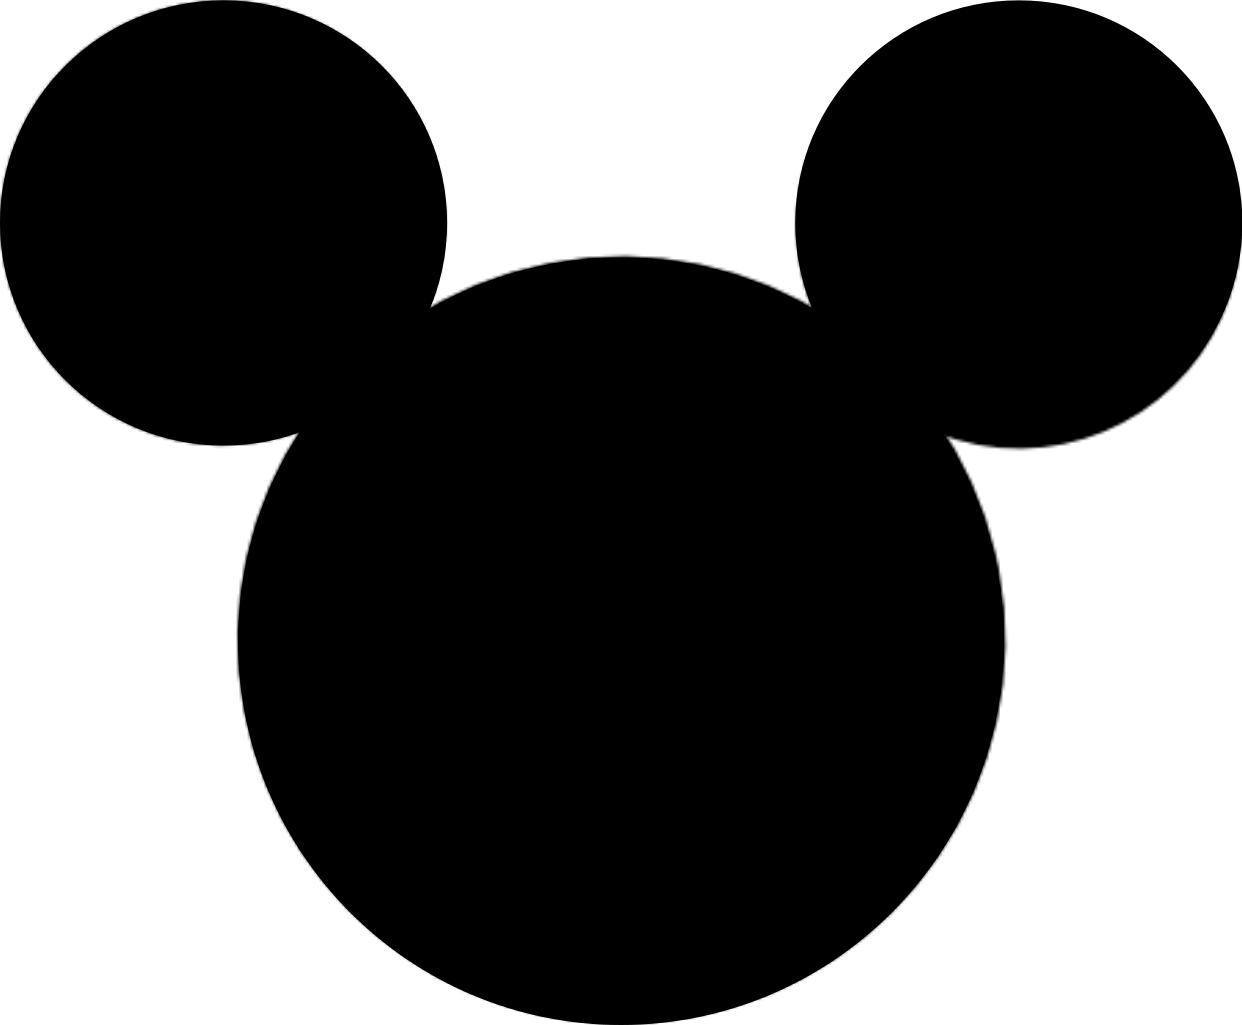 Mickey Mouse Logo Png (+).